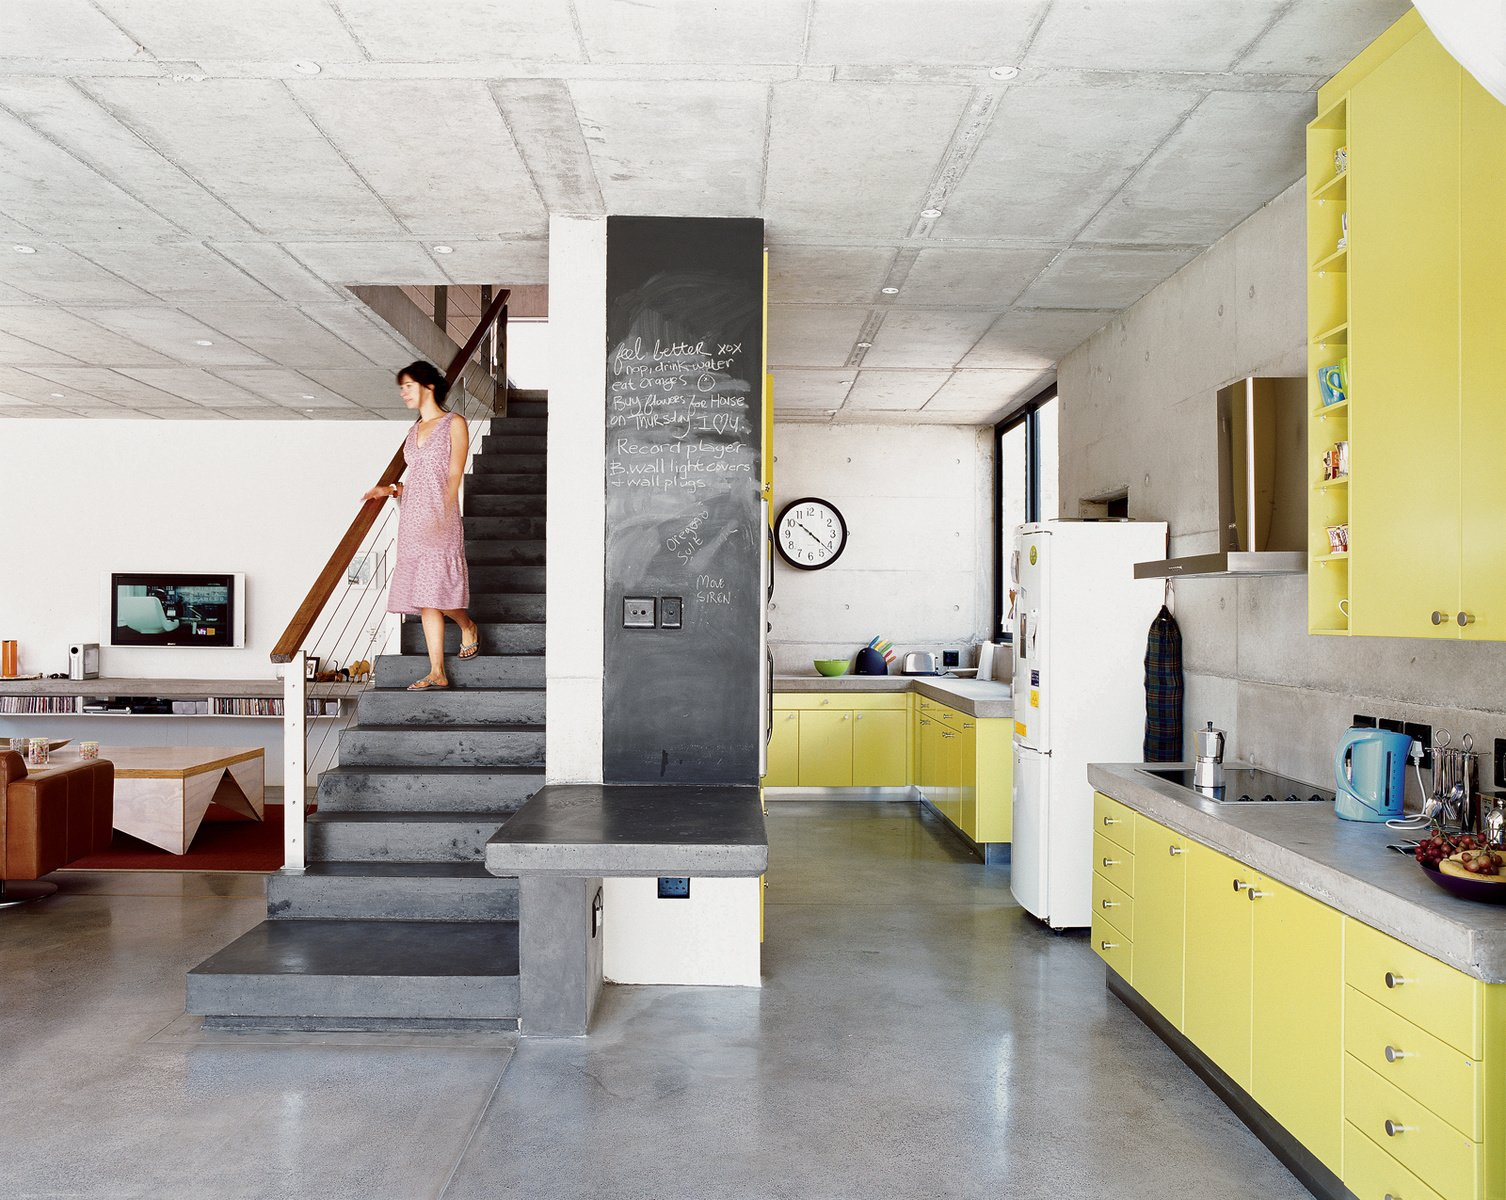 Gregory Katz proves that three times is a charm with his trio of concrete homes, which challenge the status quo in this quiet Johannesburg suburb. The kitchen shines in a bright yellow. Photo by: Elsa Young  Concrete Obsessed from Big Moves for Small Spaces